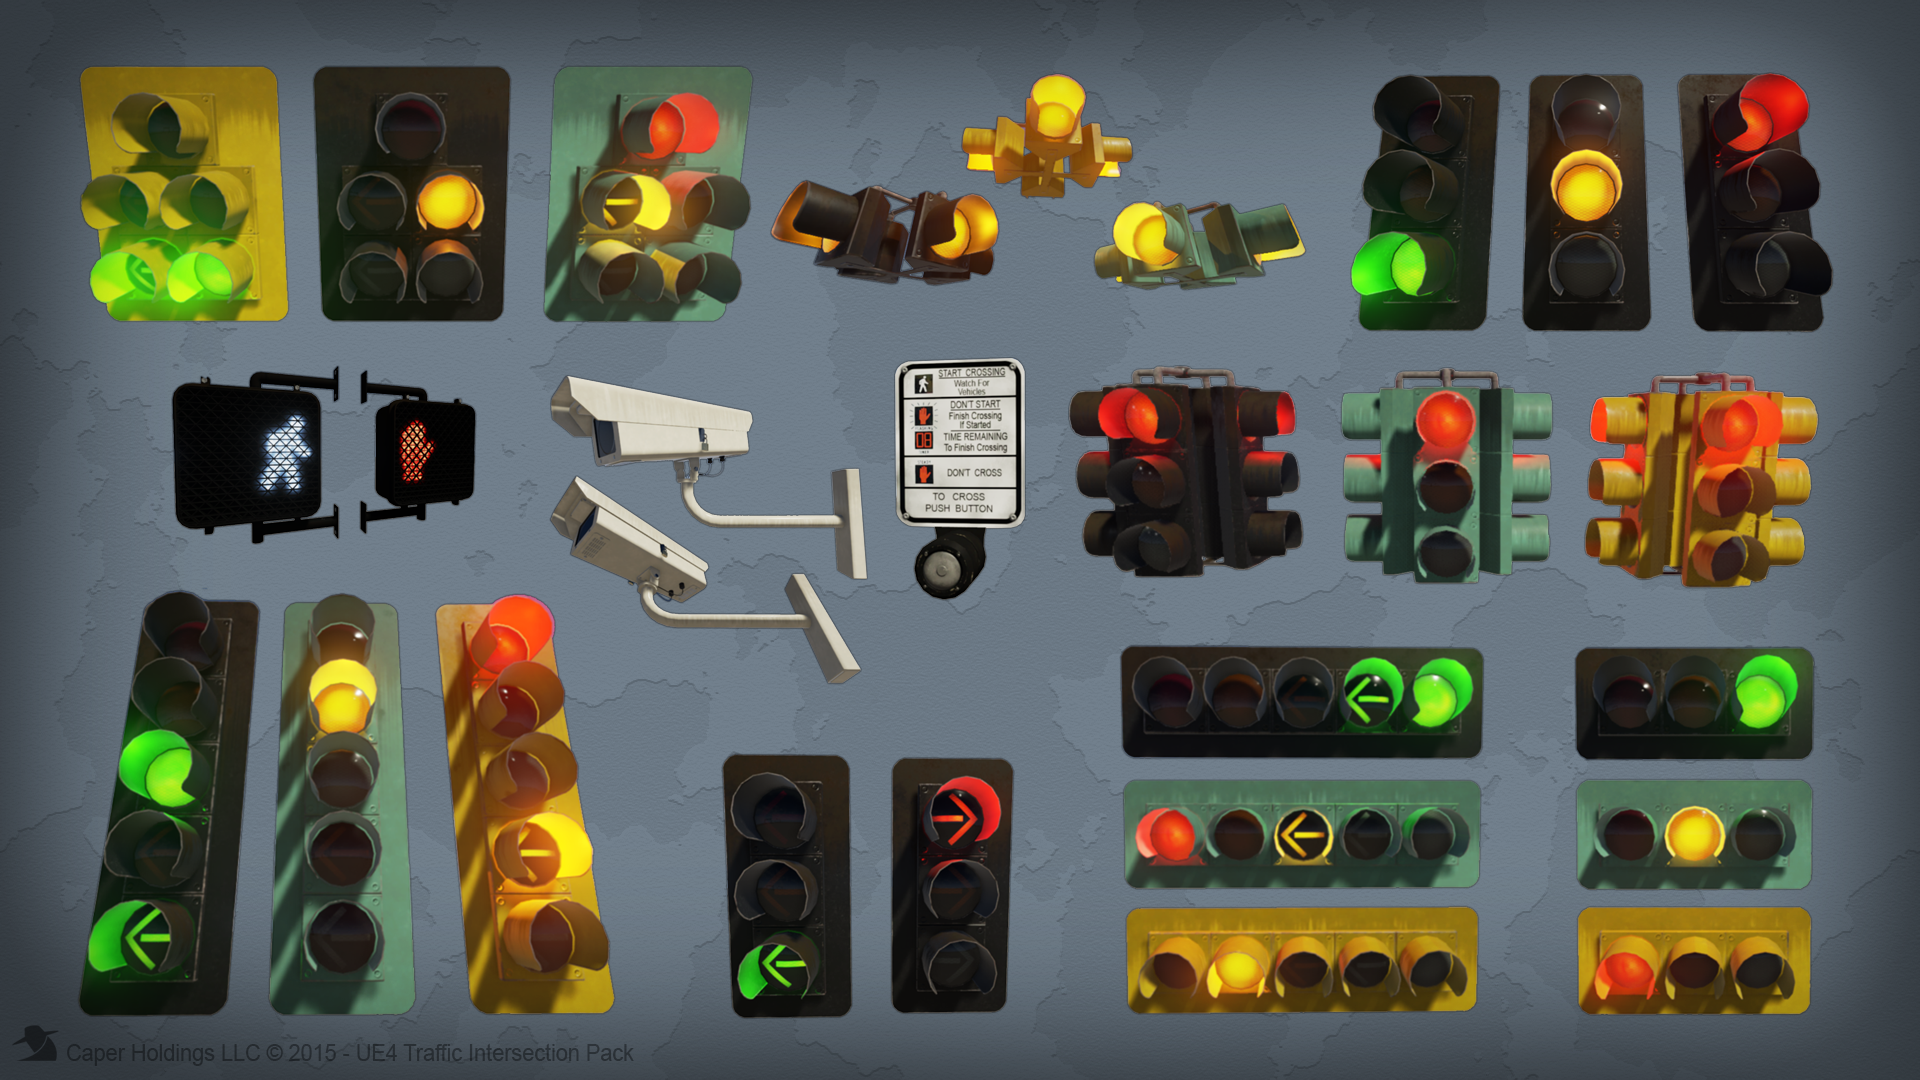 Traffic Intersection Signal by Caper Holdings LLC